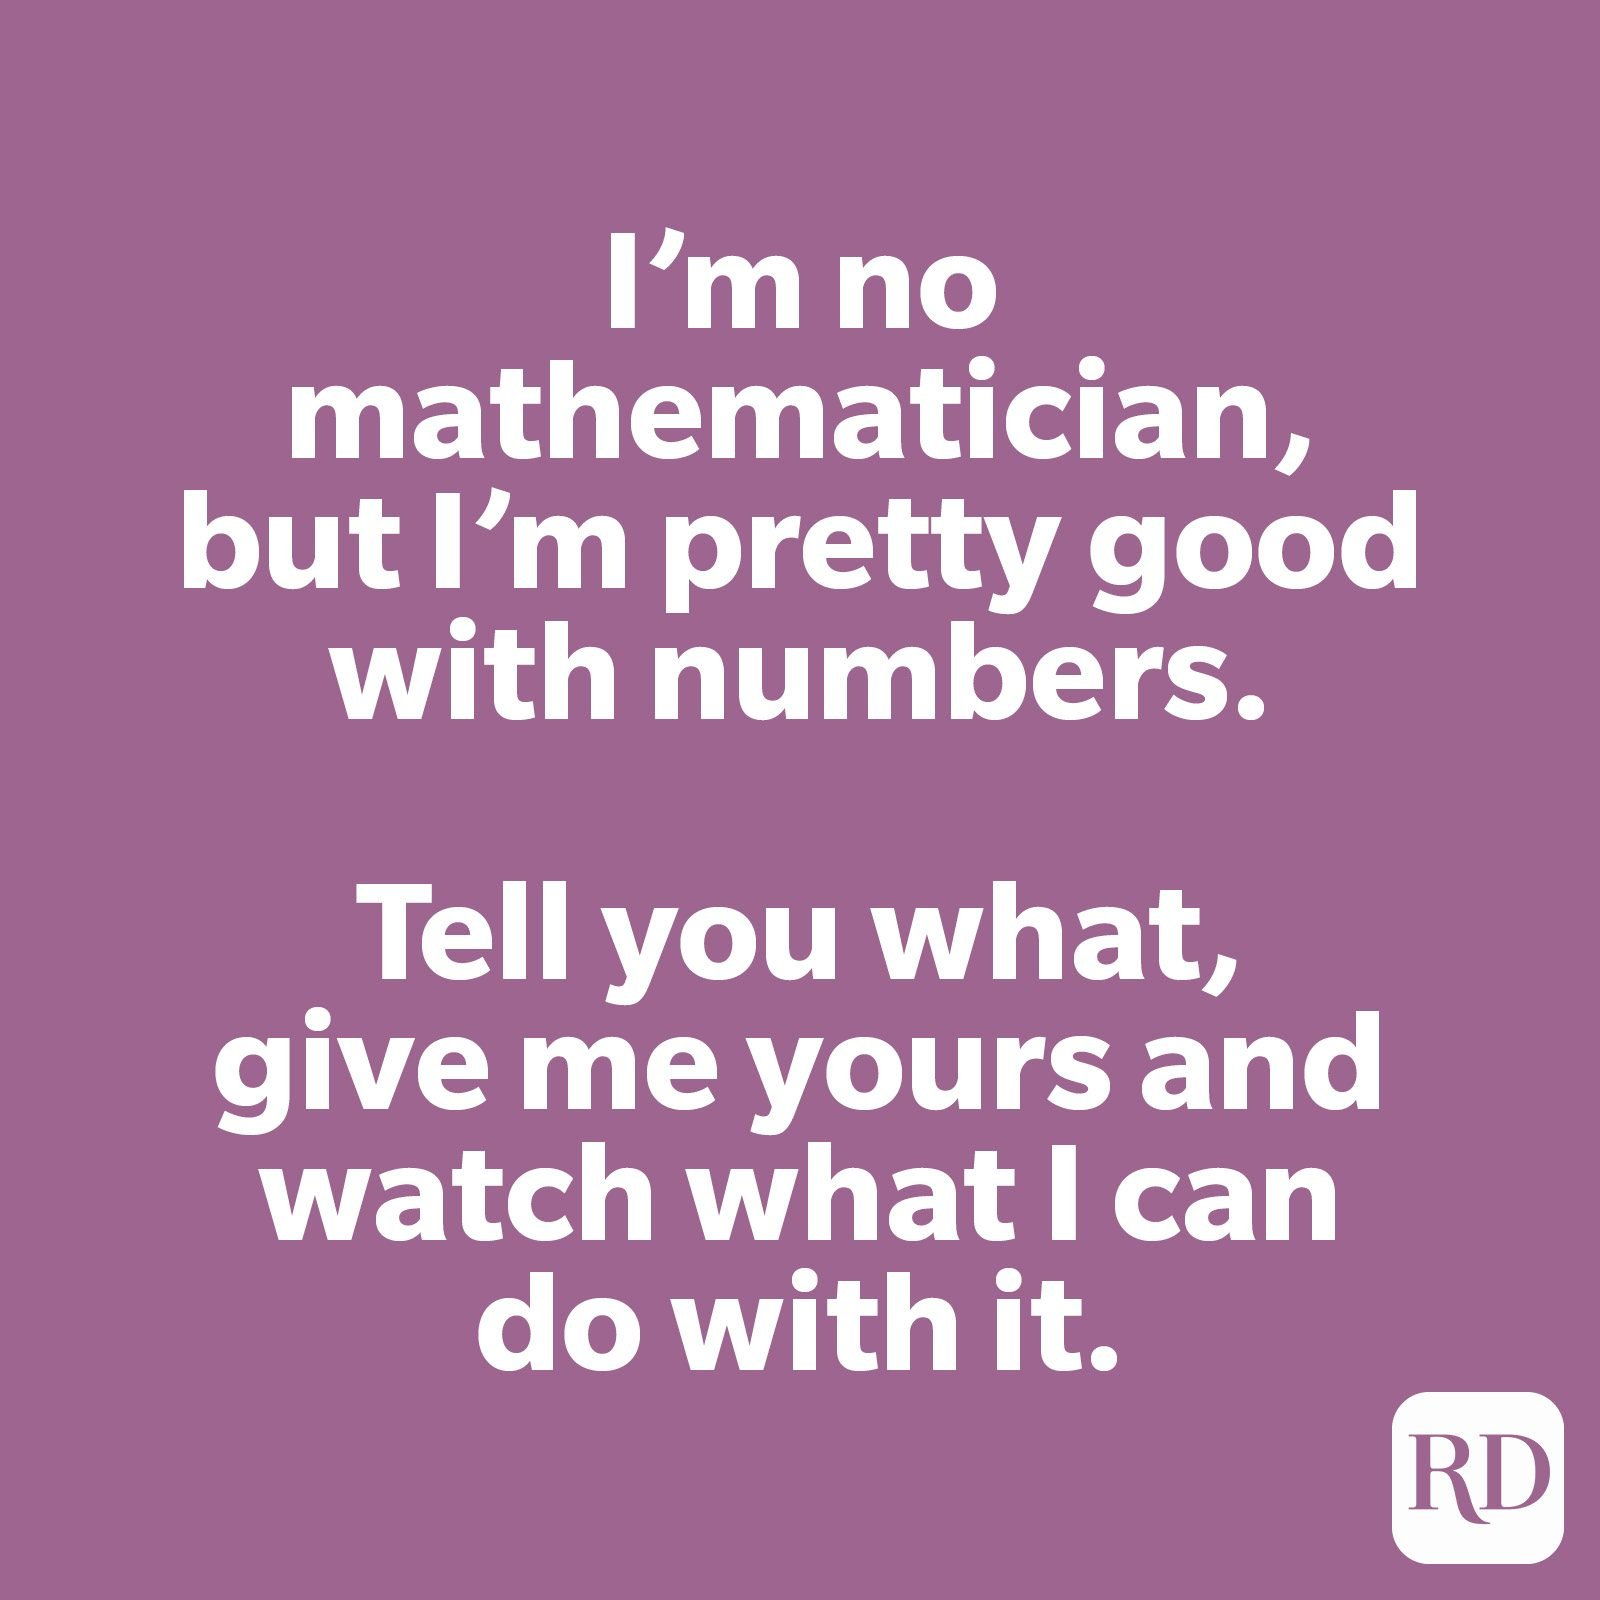 I'm no mathematician, but I'm pretty good with numbers. Tell you what, give me yours and watch what I can do with it.